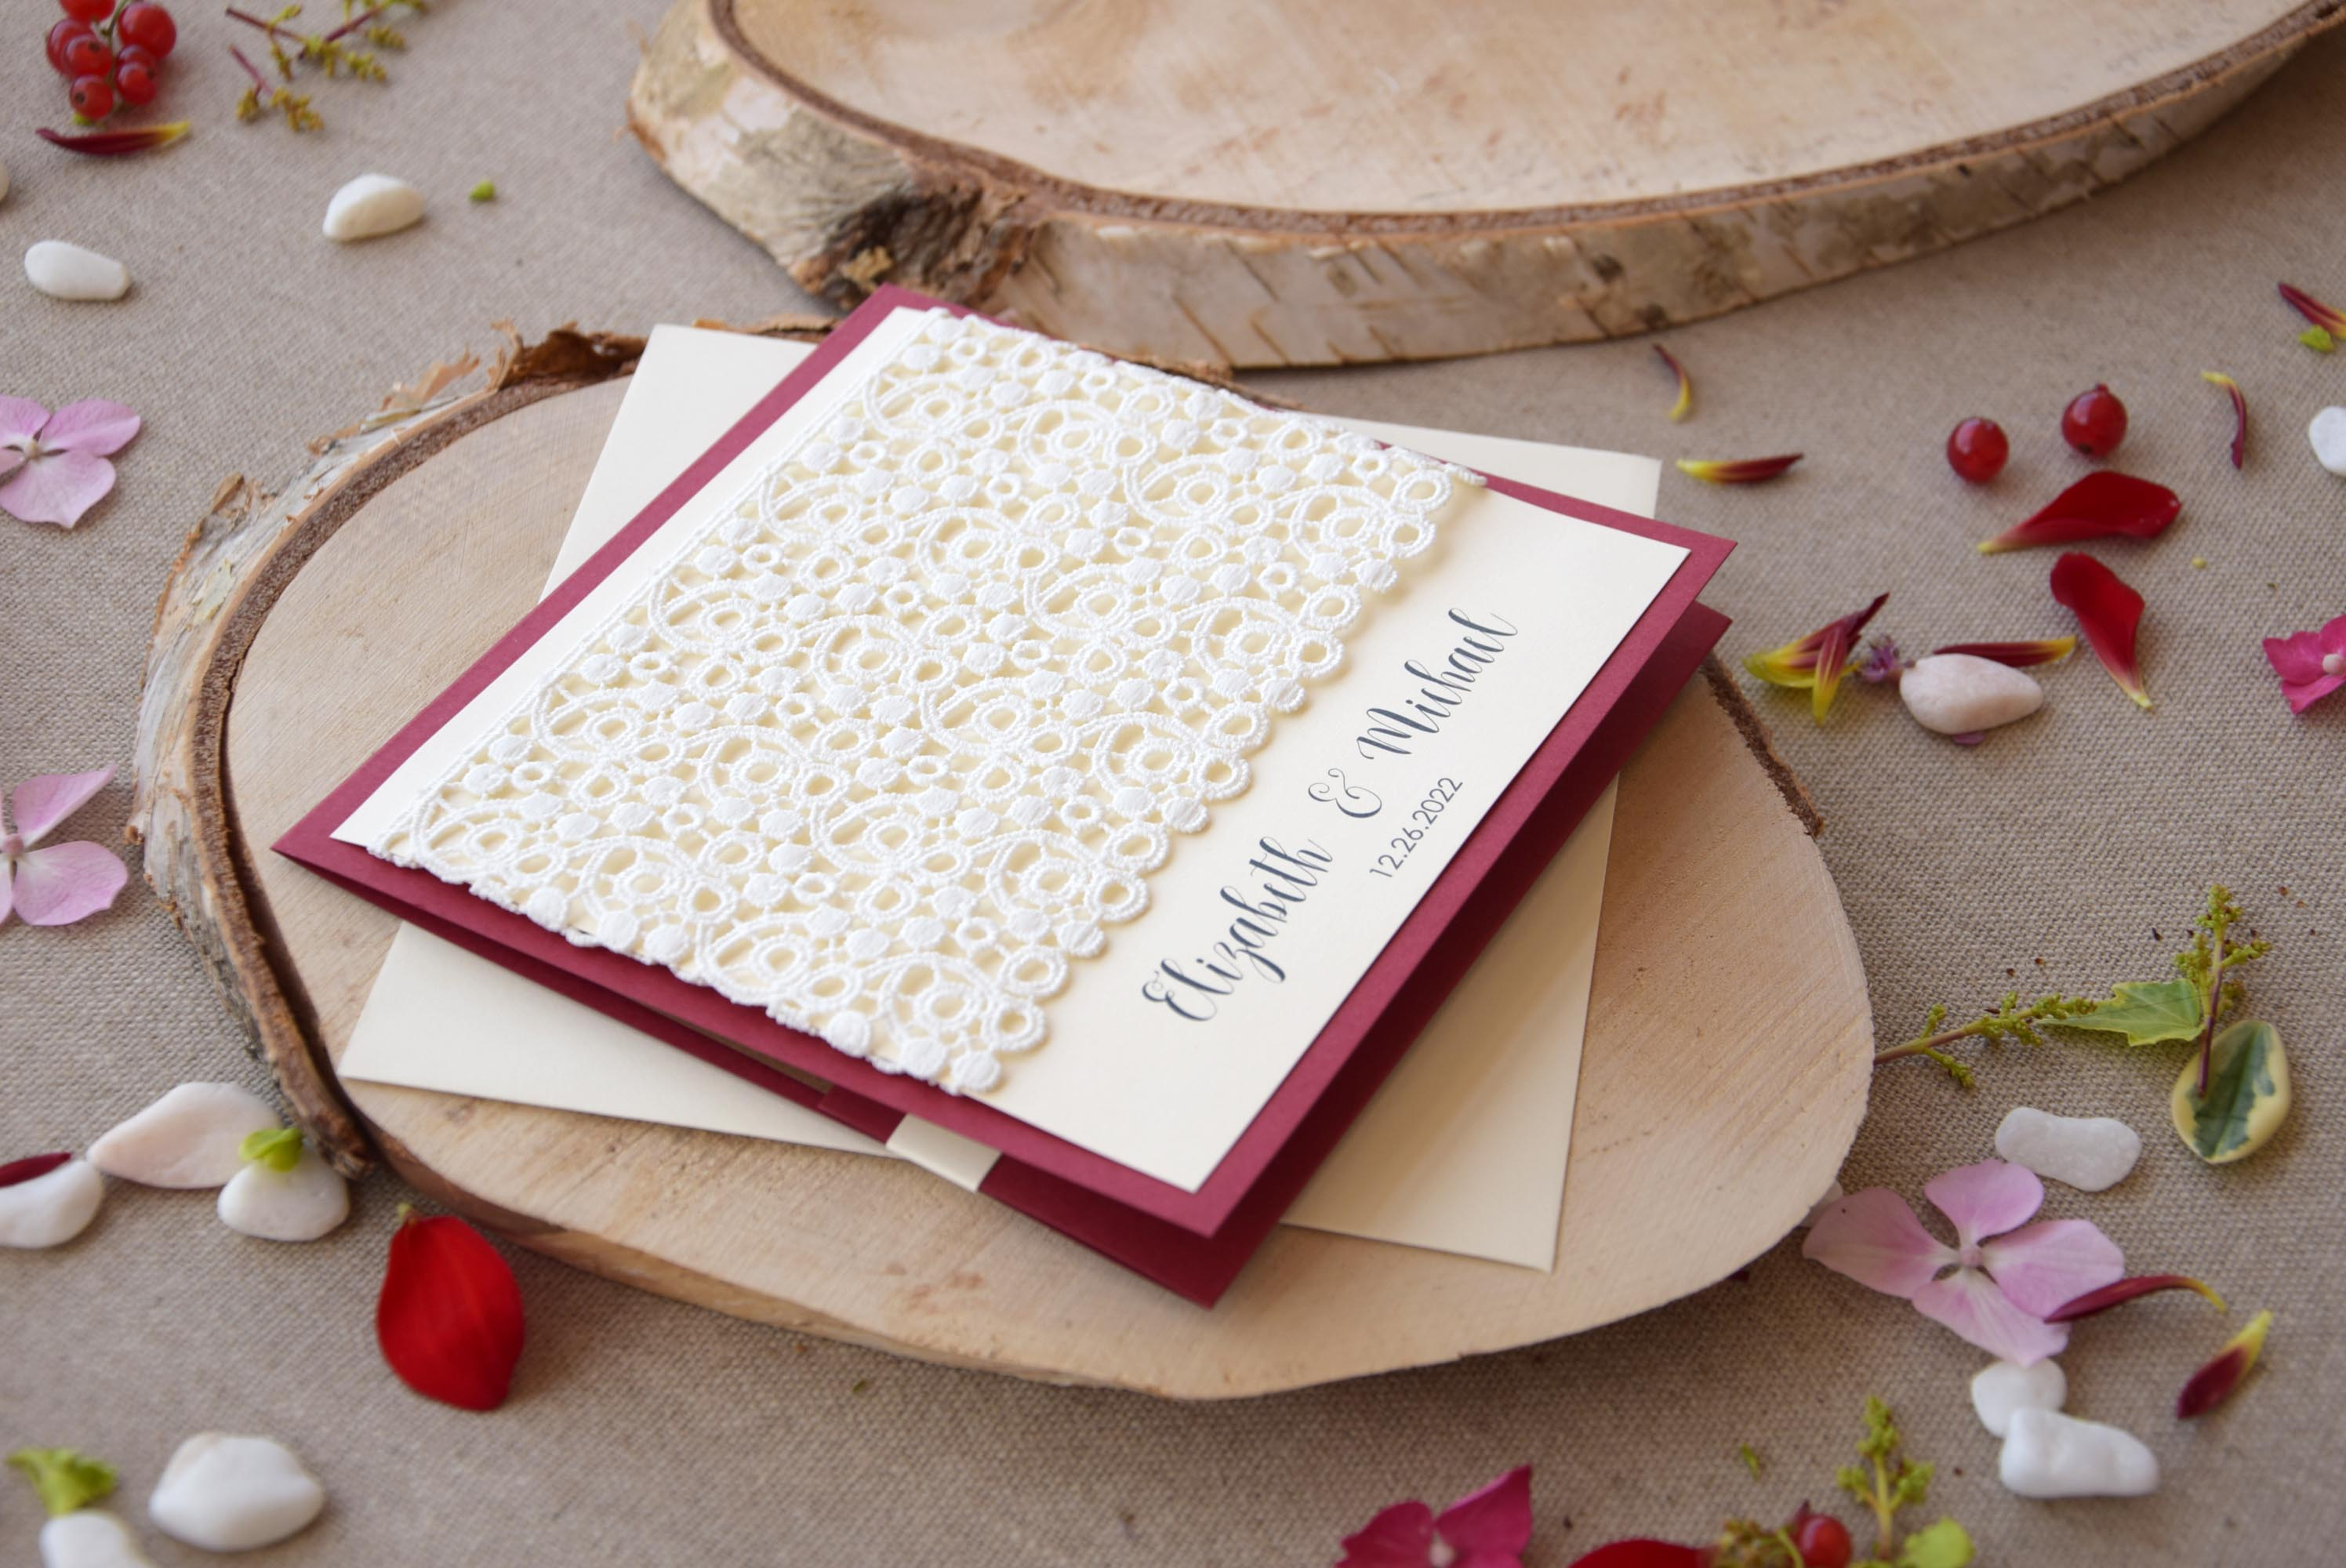 Burgundy Wedding Invitation #rusticinvitations #laceweddinginvitations #rusticwedding #rusticlaceweddinginvitations